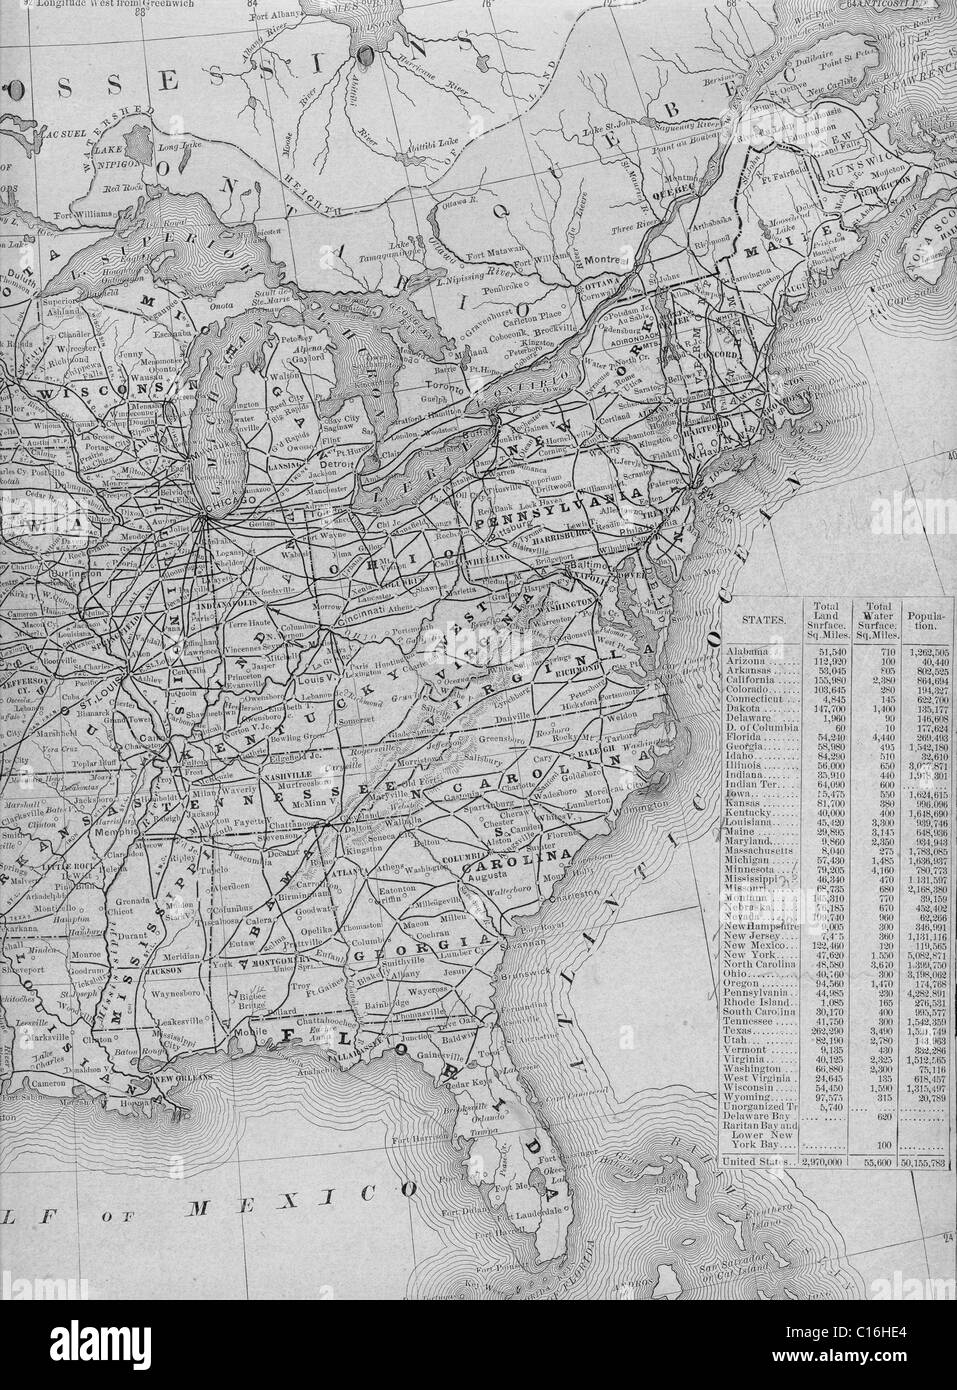 Old Map Of Eastern United States From Original Geography Textbook - Us map 1884